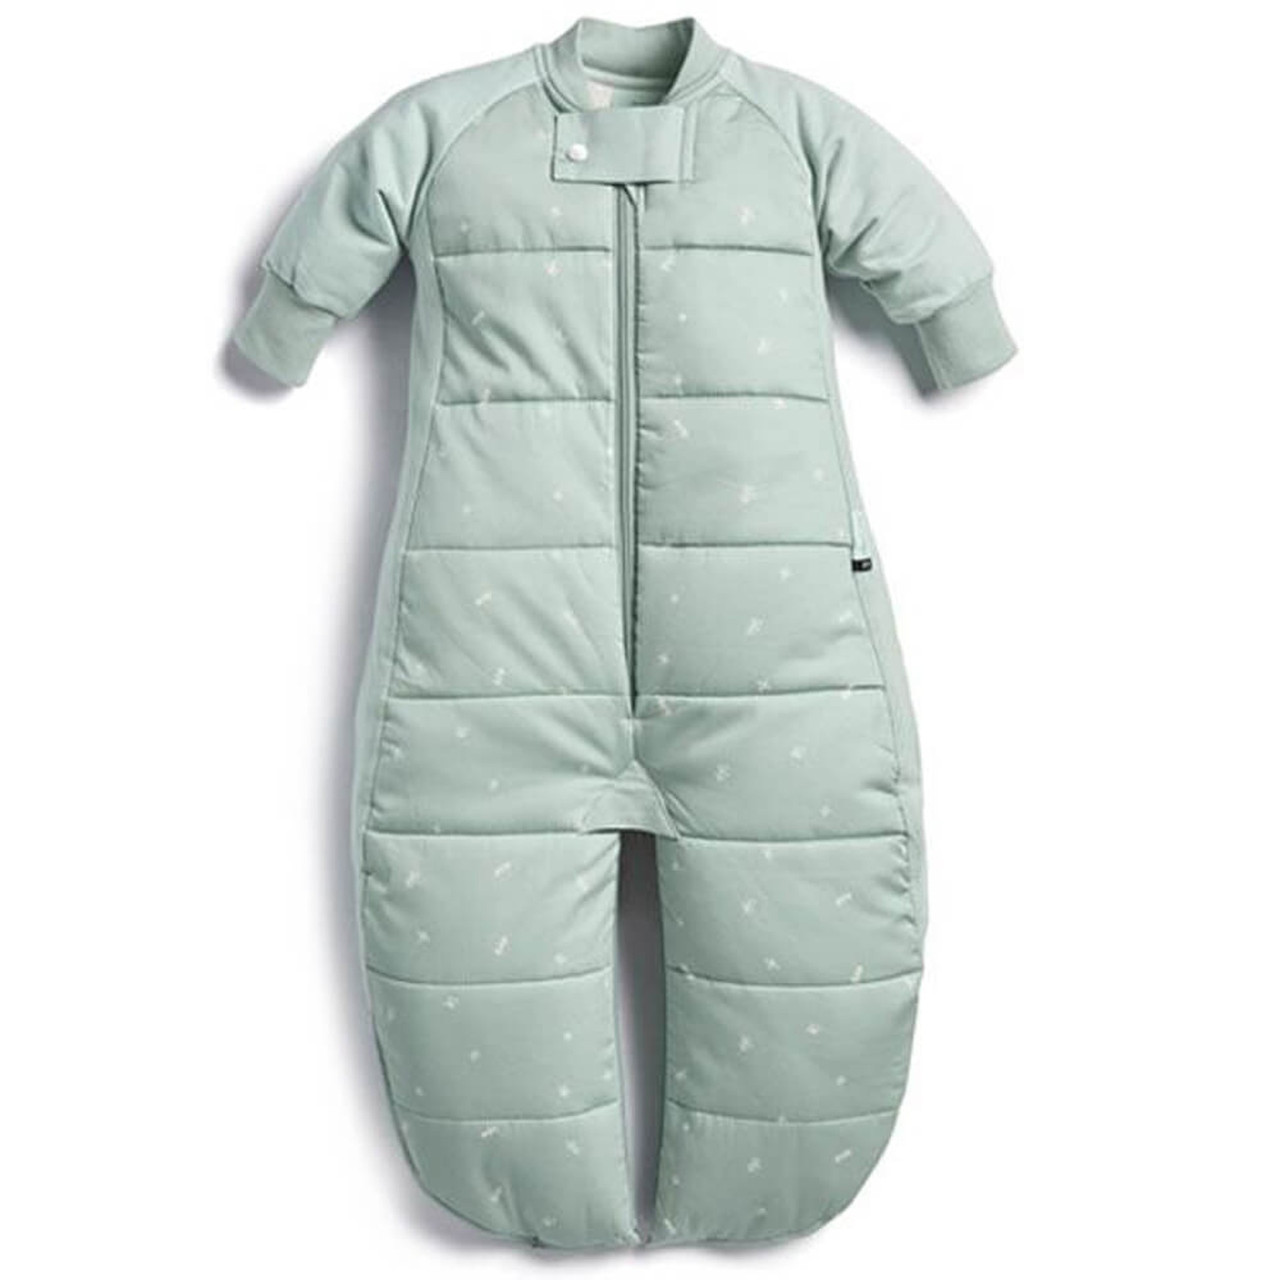 Ergopouch Sleepsuit Bag 2.5 Tog 3-12 Months at Baby Barn Discounts Ergopouch award-winning Sleep Suit Bag converts from a Sleeping Bag to a Sleep Suit with legs using the 4-way zippers.